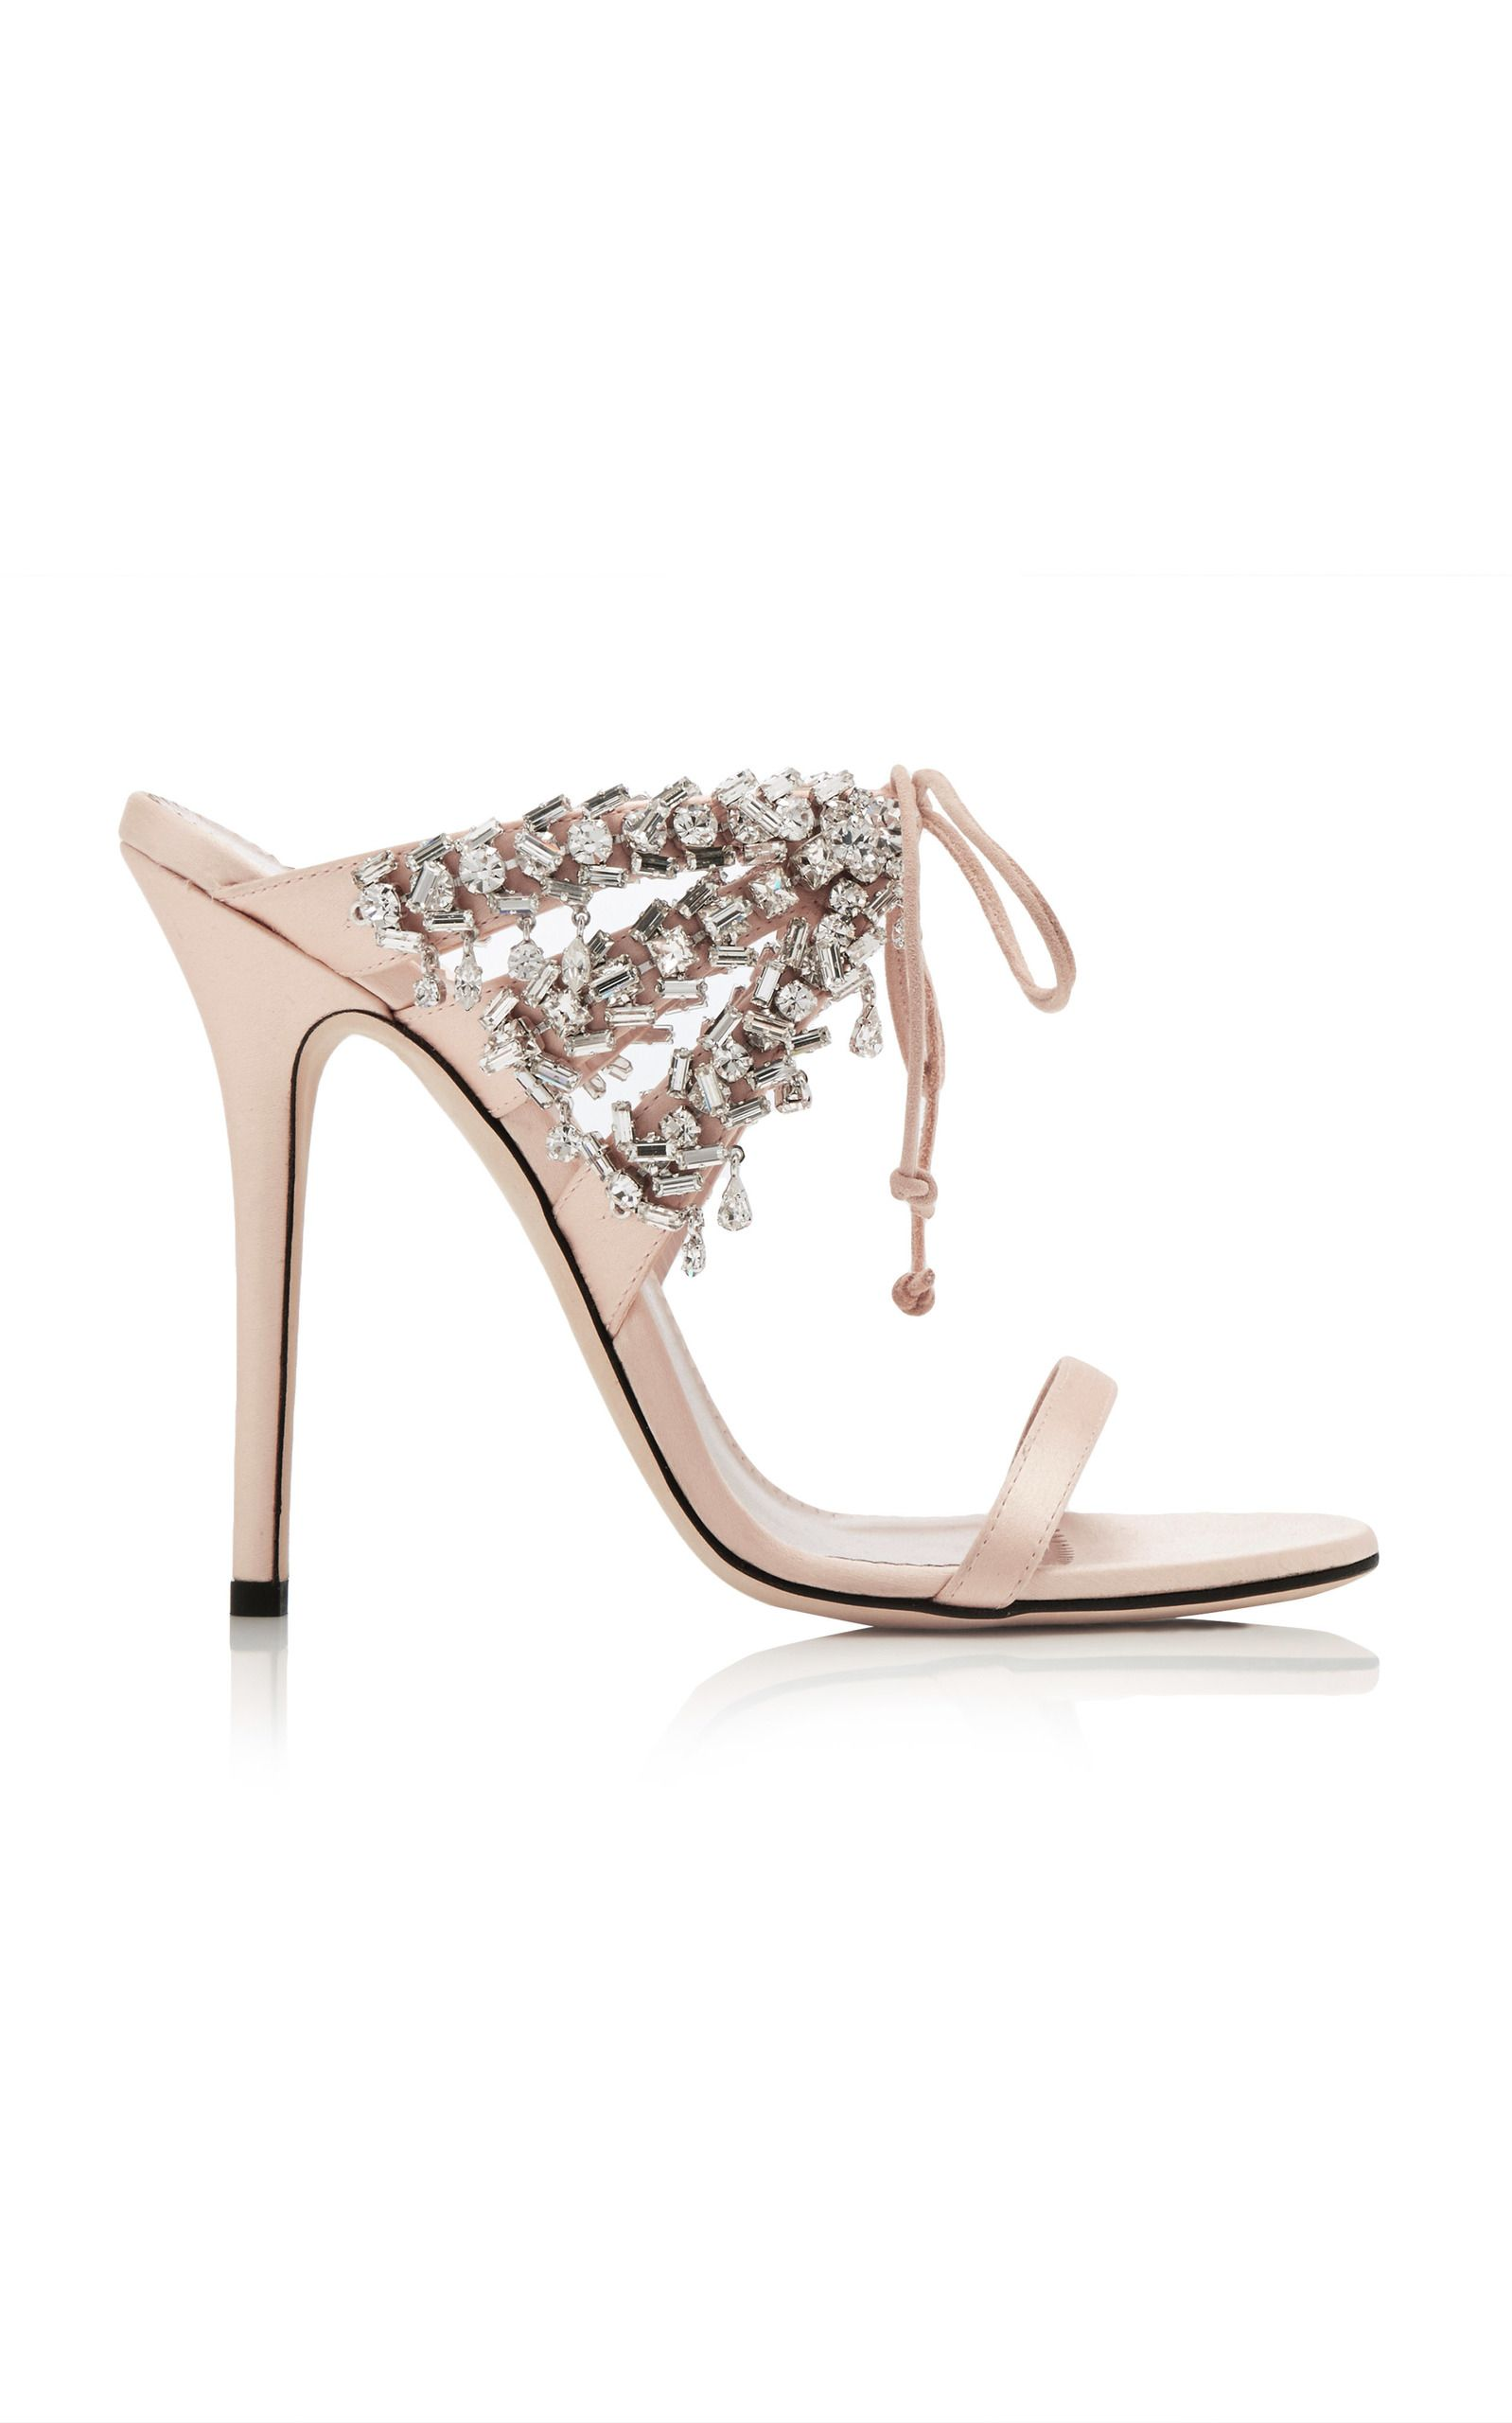 9adc38dbd859e Crystal-Embellished Satin Sandals by GIUSEPPE ZANOTTI Now Available on Moda  Operandi